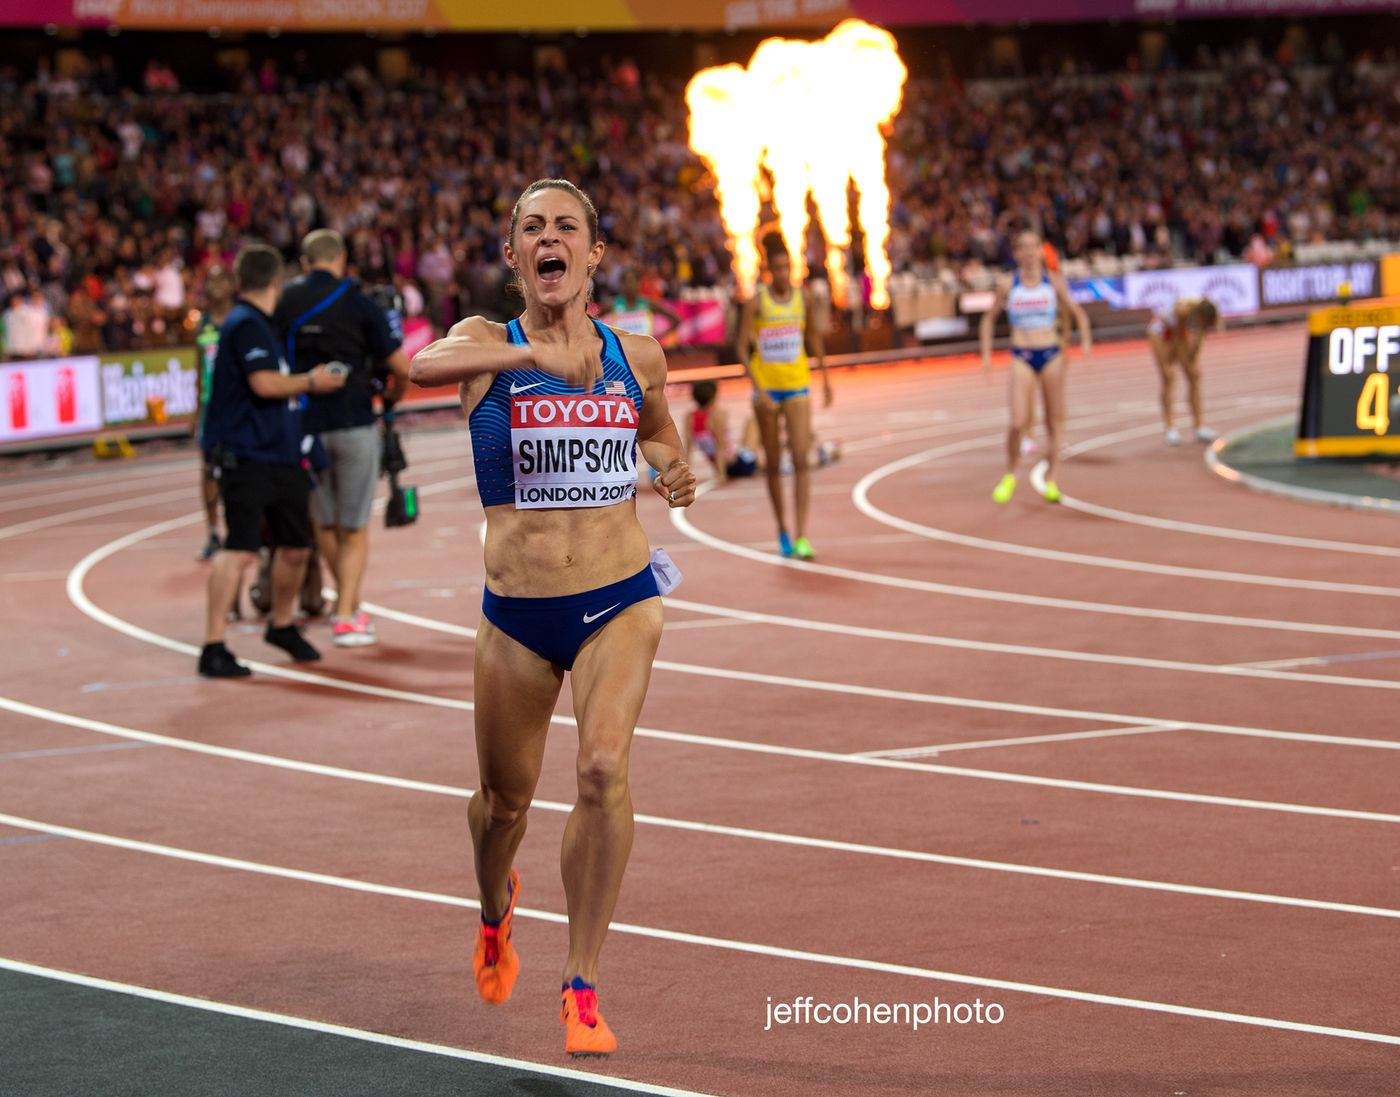 2017-IAAF-WC-London-night-4-simpson-1500w-jube-4810-jeff-cohen-photo---web.jpg